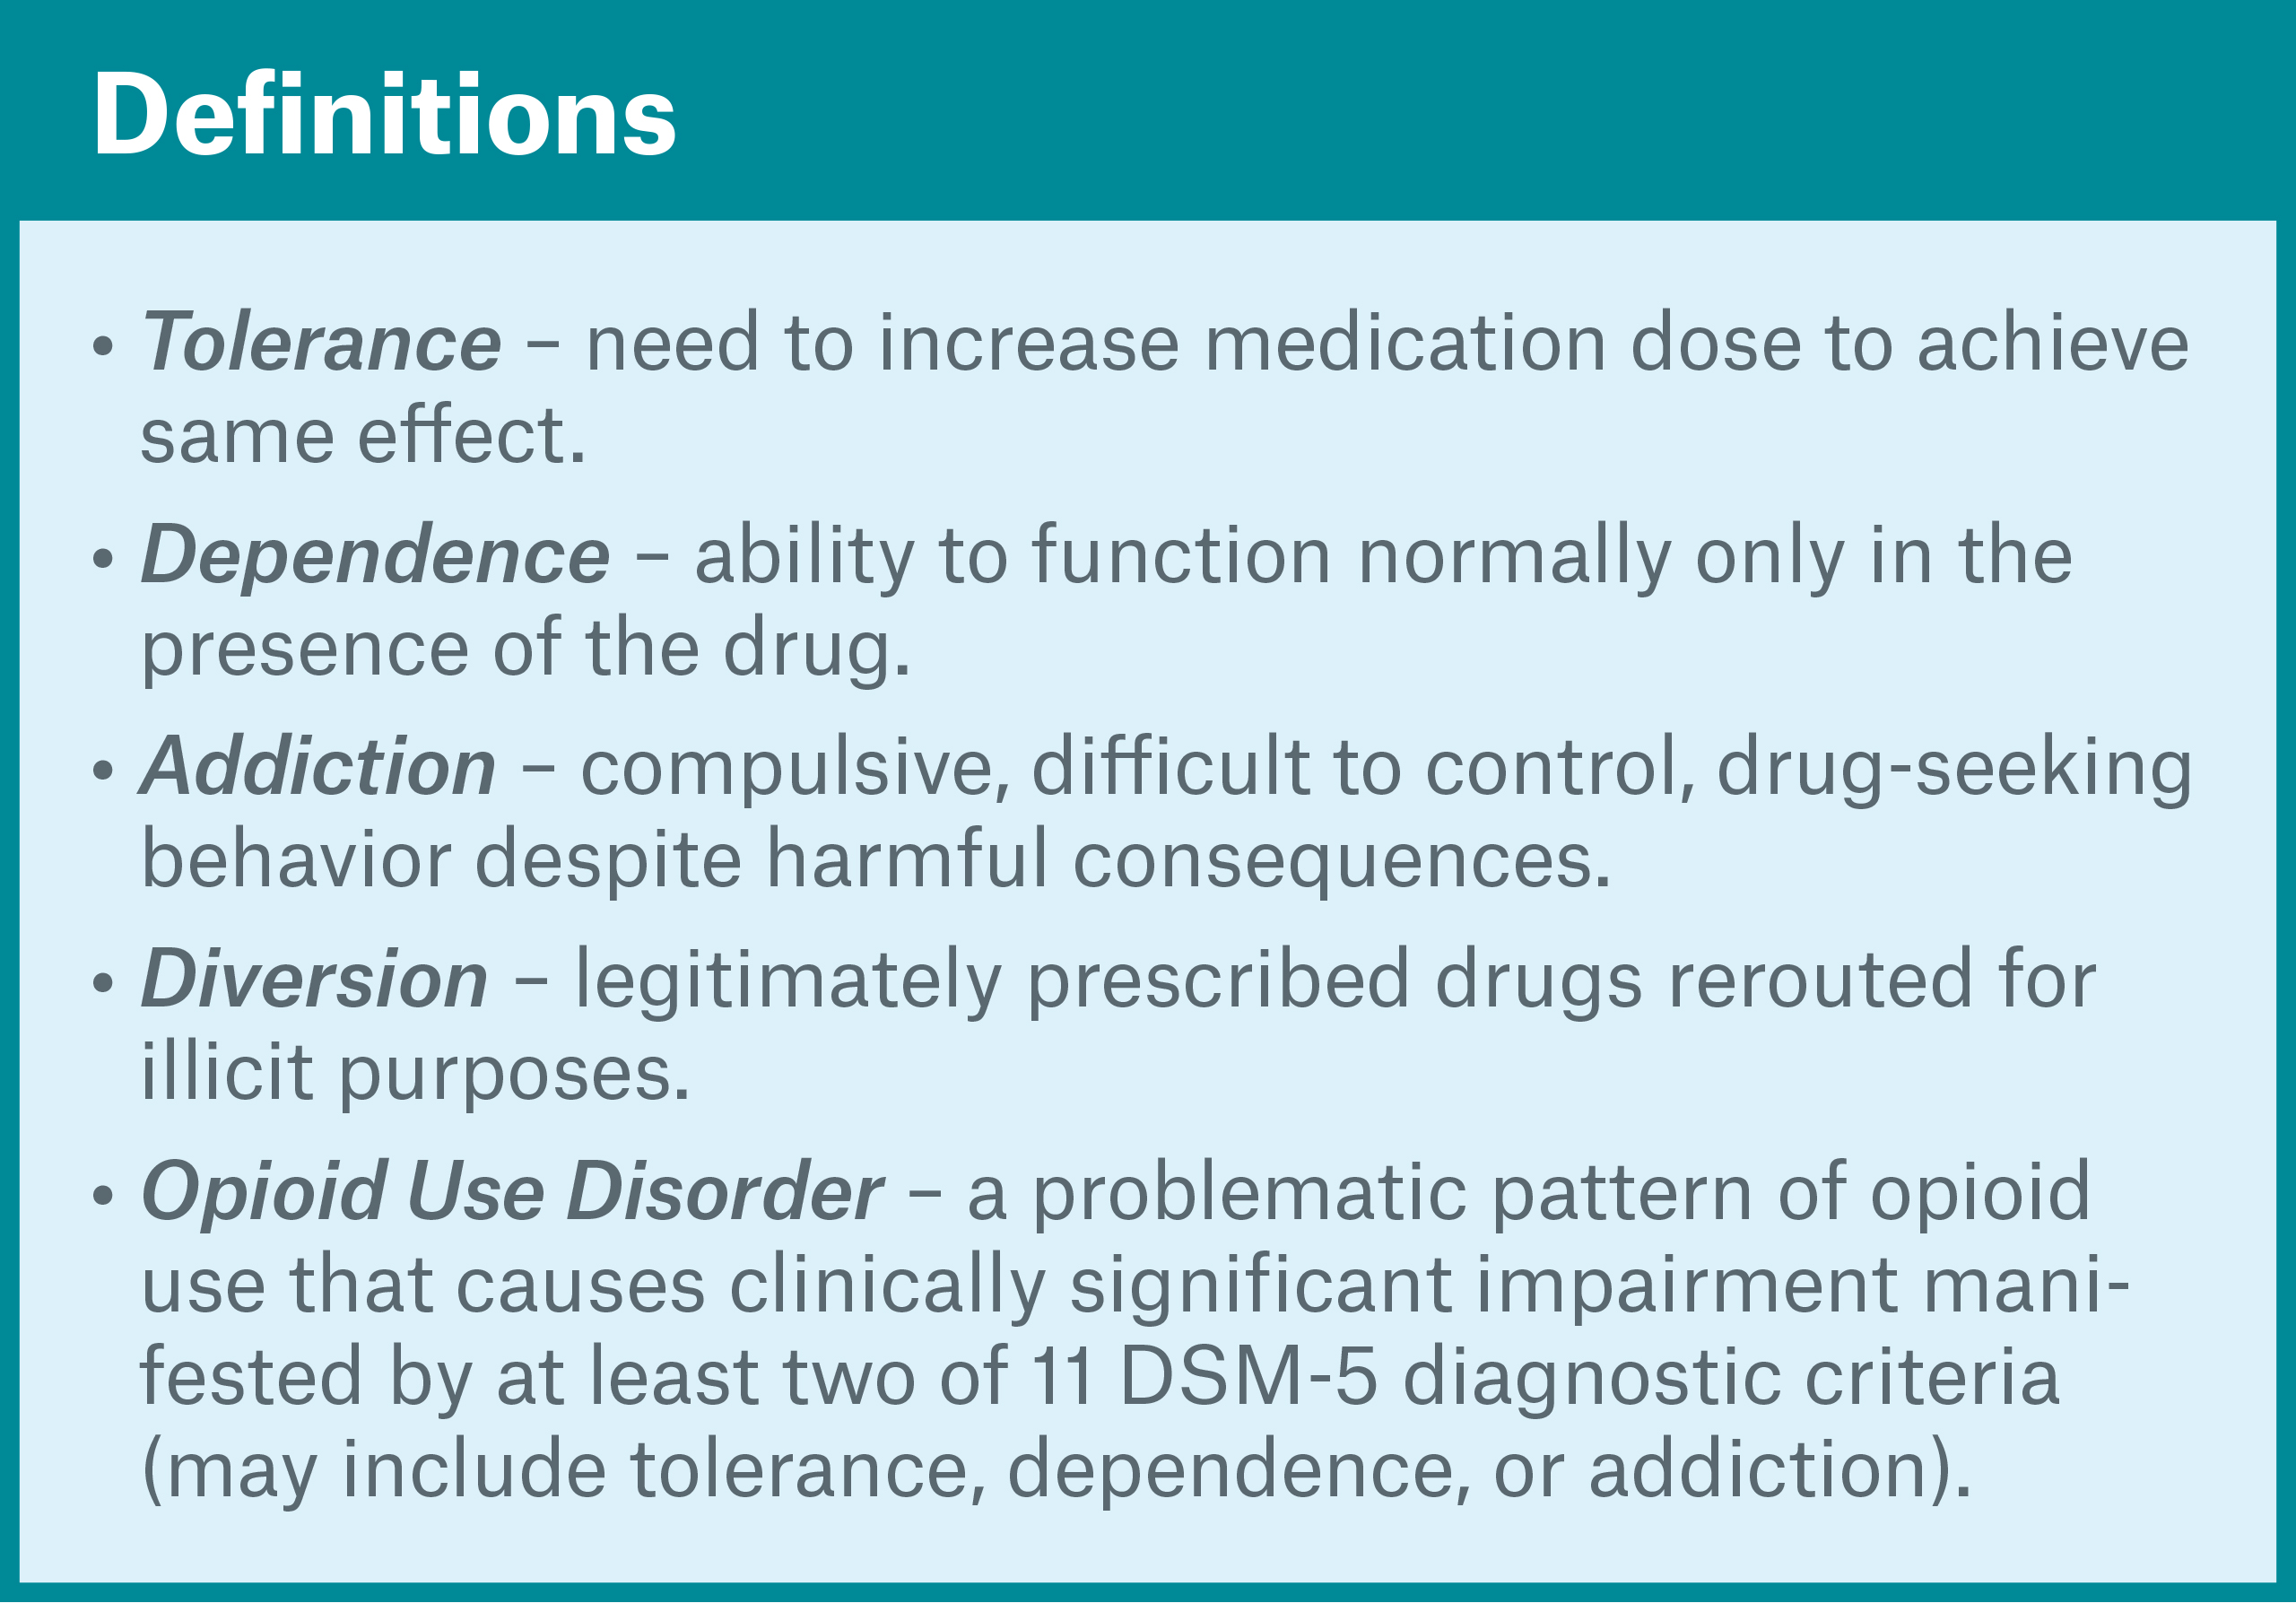 Opioid Epidemic Definition Image